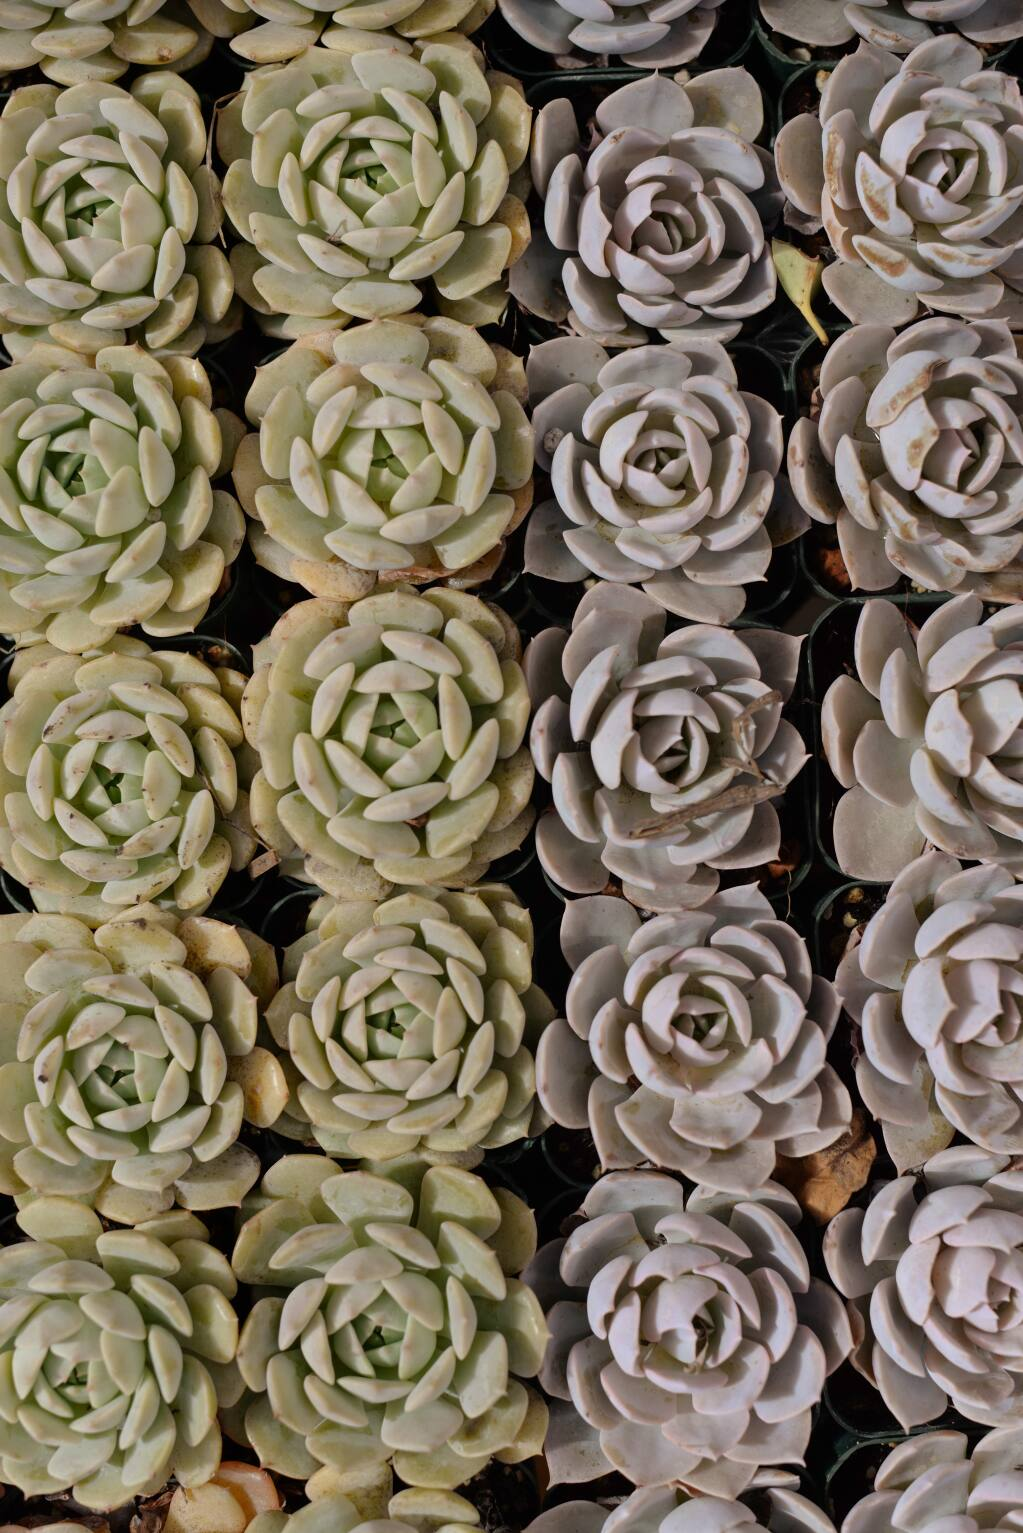 Echeveria succulent plants in the greenhouse at the Sunset Test Gardens at Cornerstone Sonoma on Arnold Drive in Sonoma. May 2, 2016. (Photo: Erik Castro/for The Press Democrat)